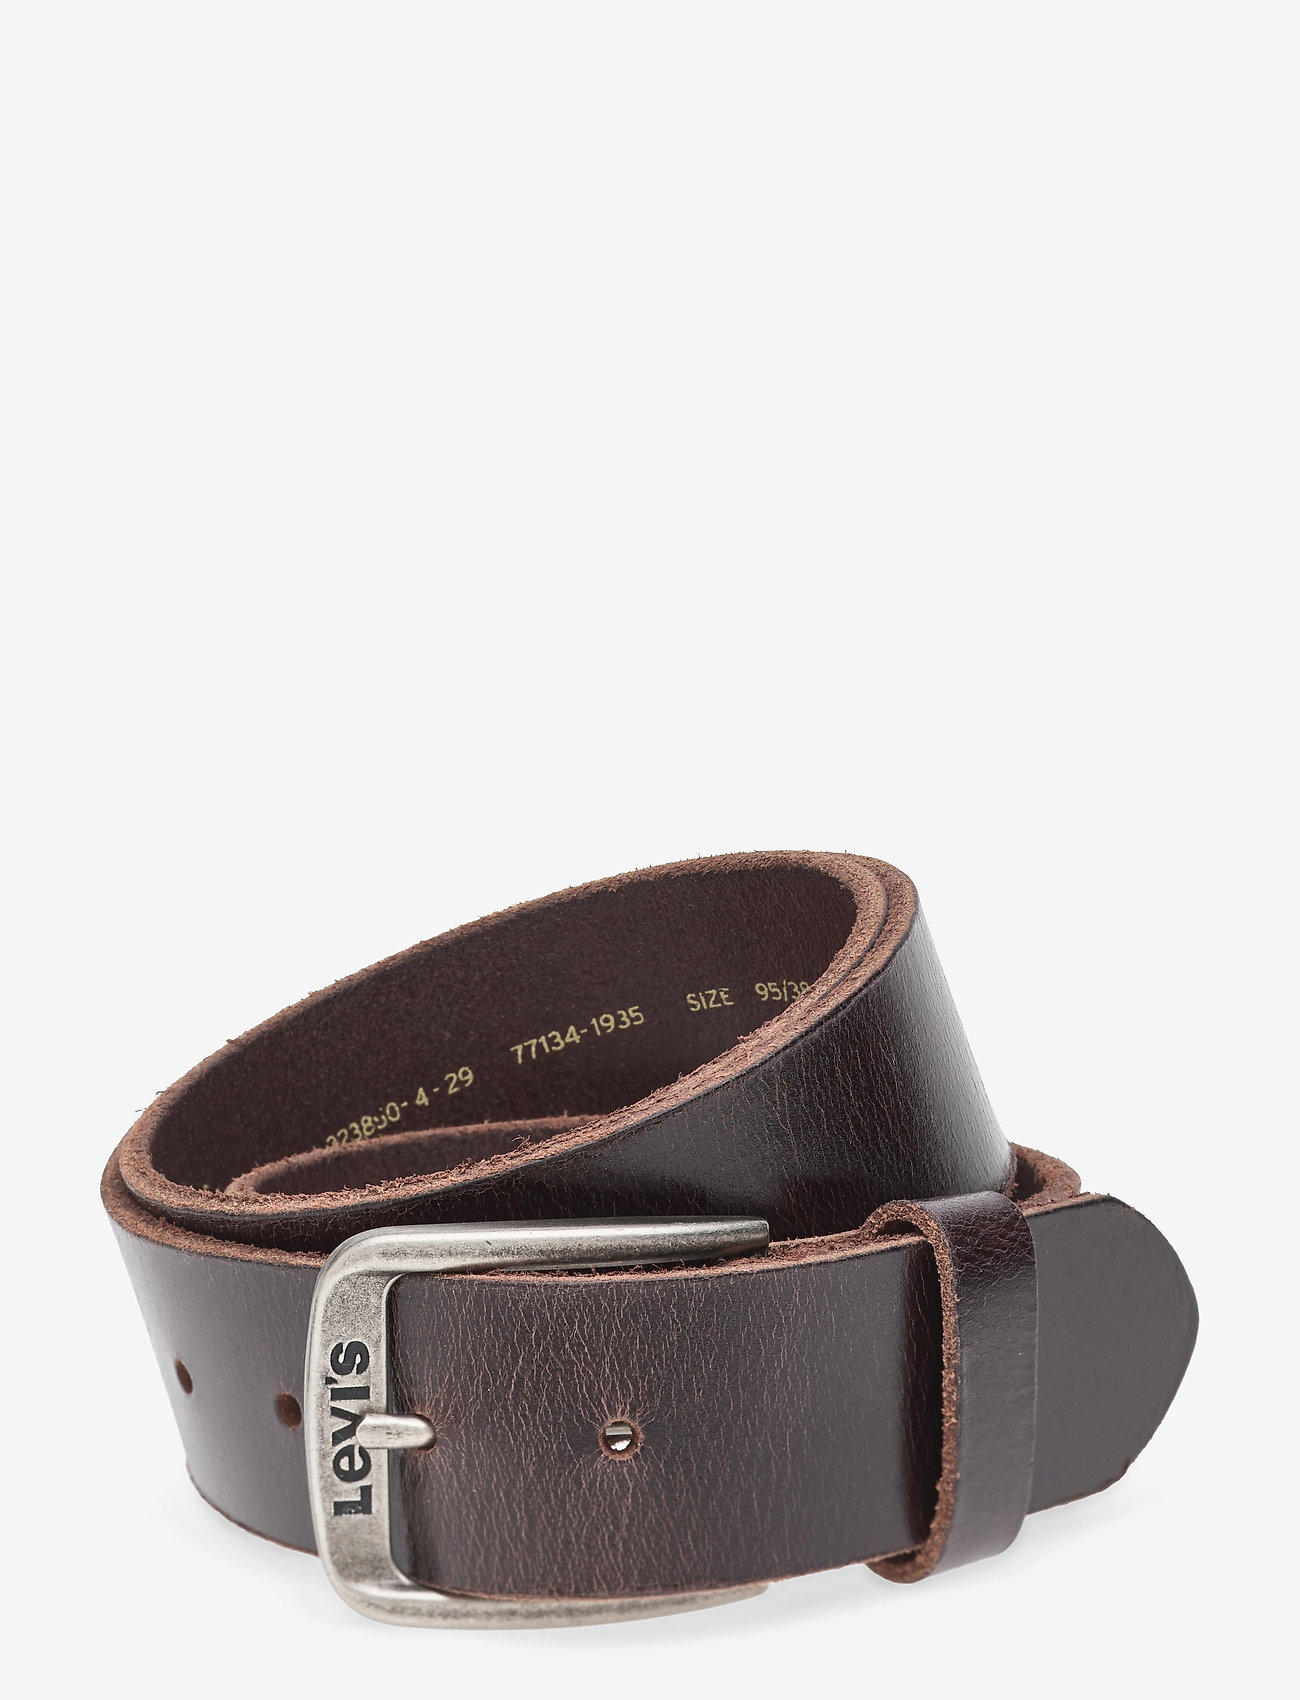 Levi's Footwear & Acc - ALTURAS - skärp - dark brown - 0